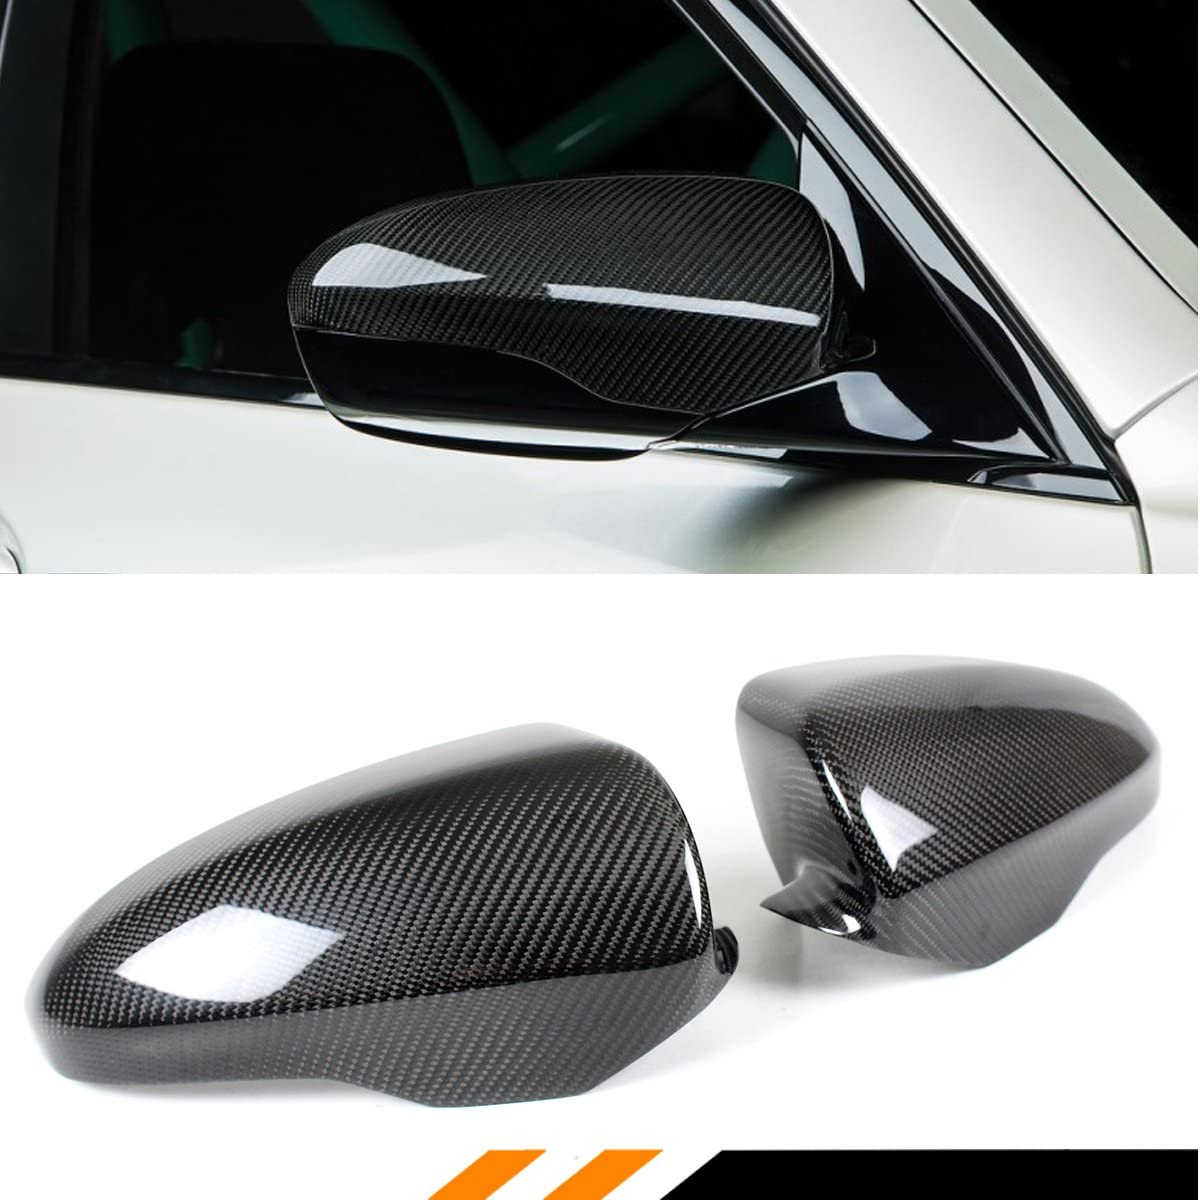 Carbon Fiber Tape-on Mirror Covers for 2012-2017 BMW M5 M6 2013 2014 2015 2016